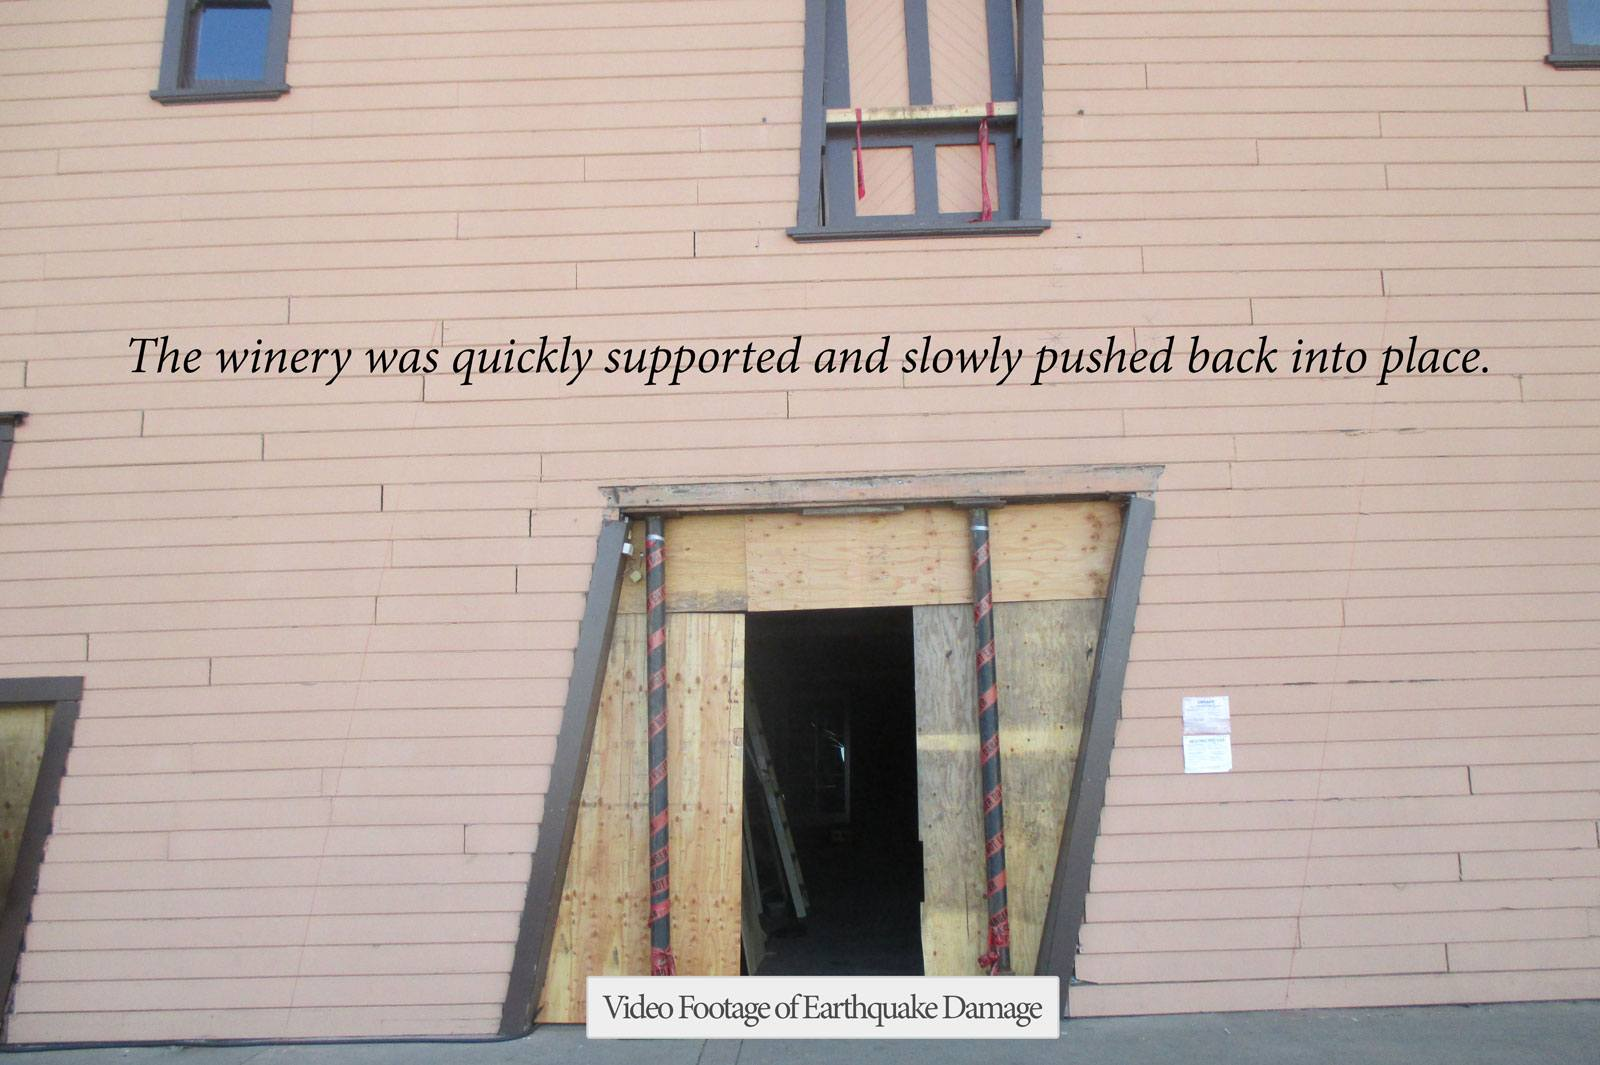 winery construction following earthquake damage